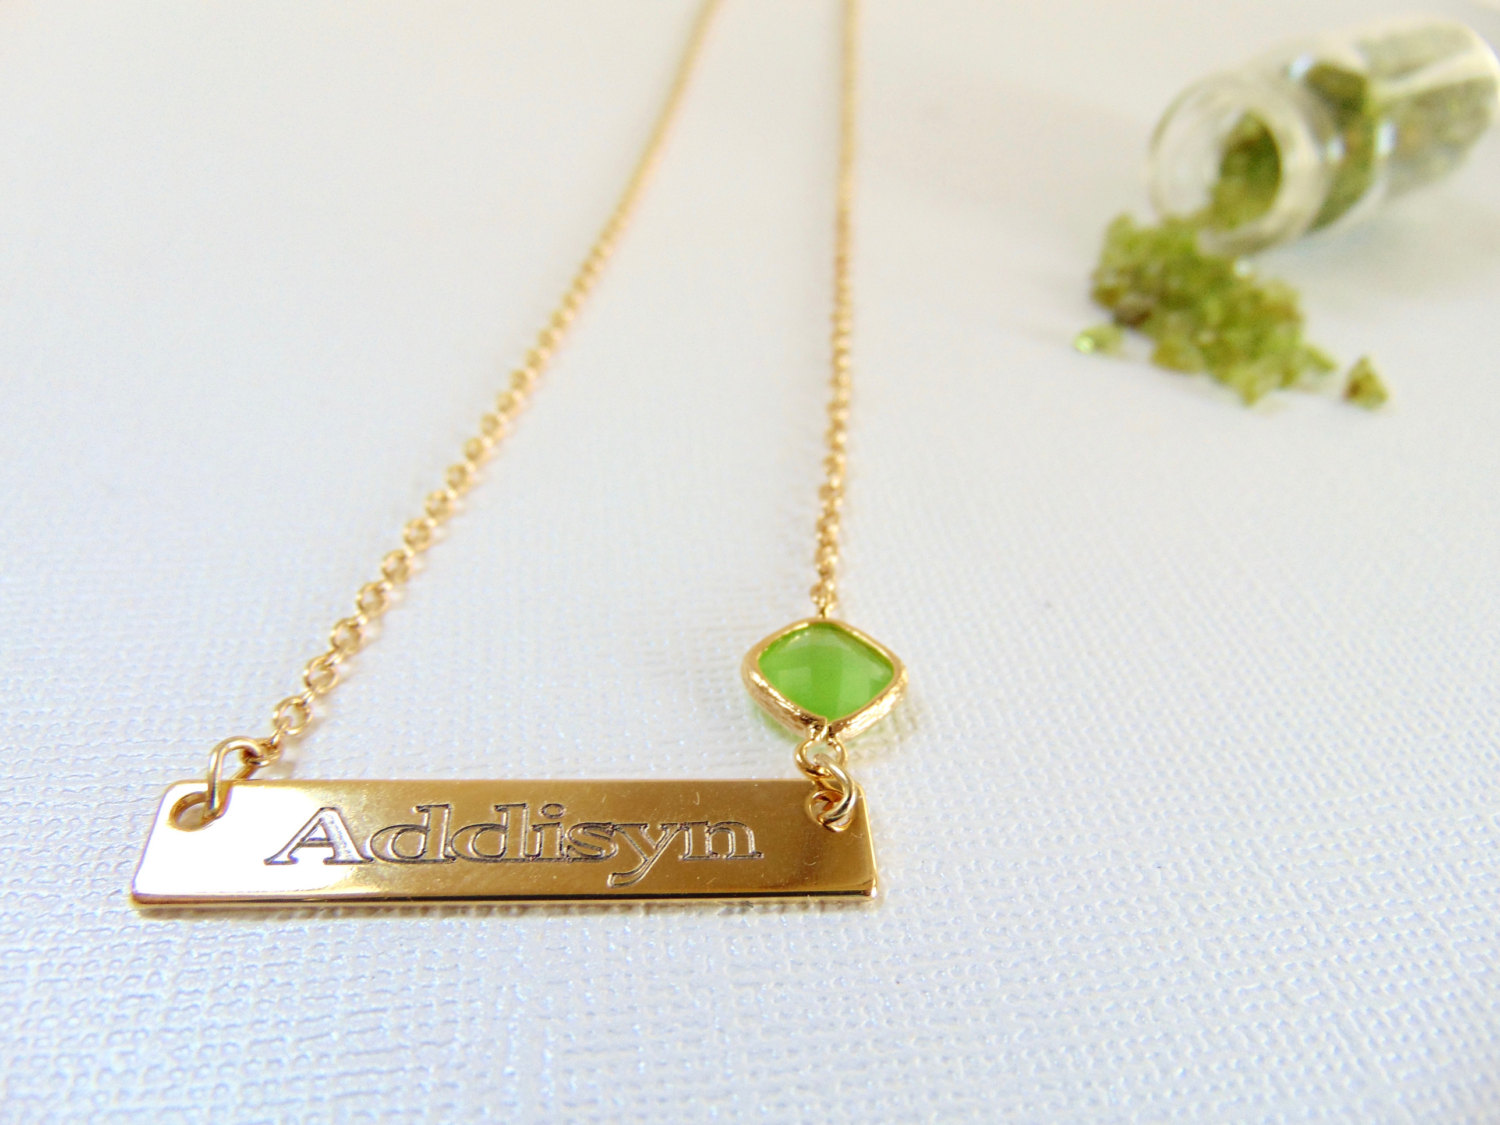 Mothers day gift 16k gold bar necklace birthstone jewelry engraved prev aloadofball Gallery